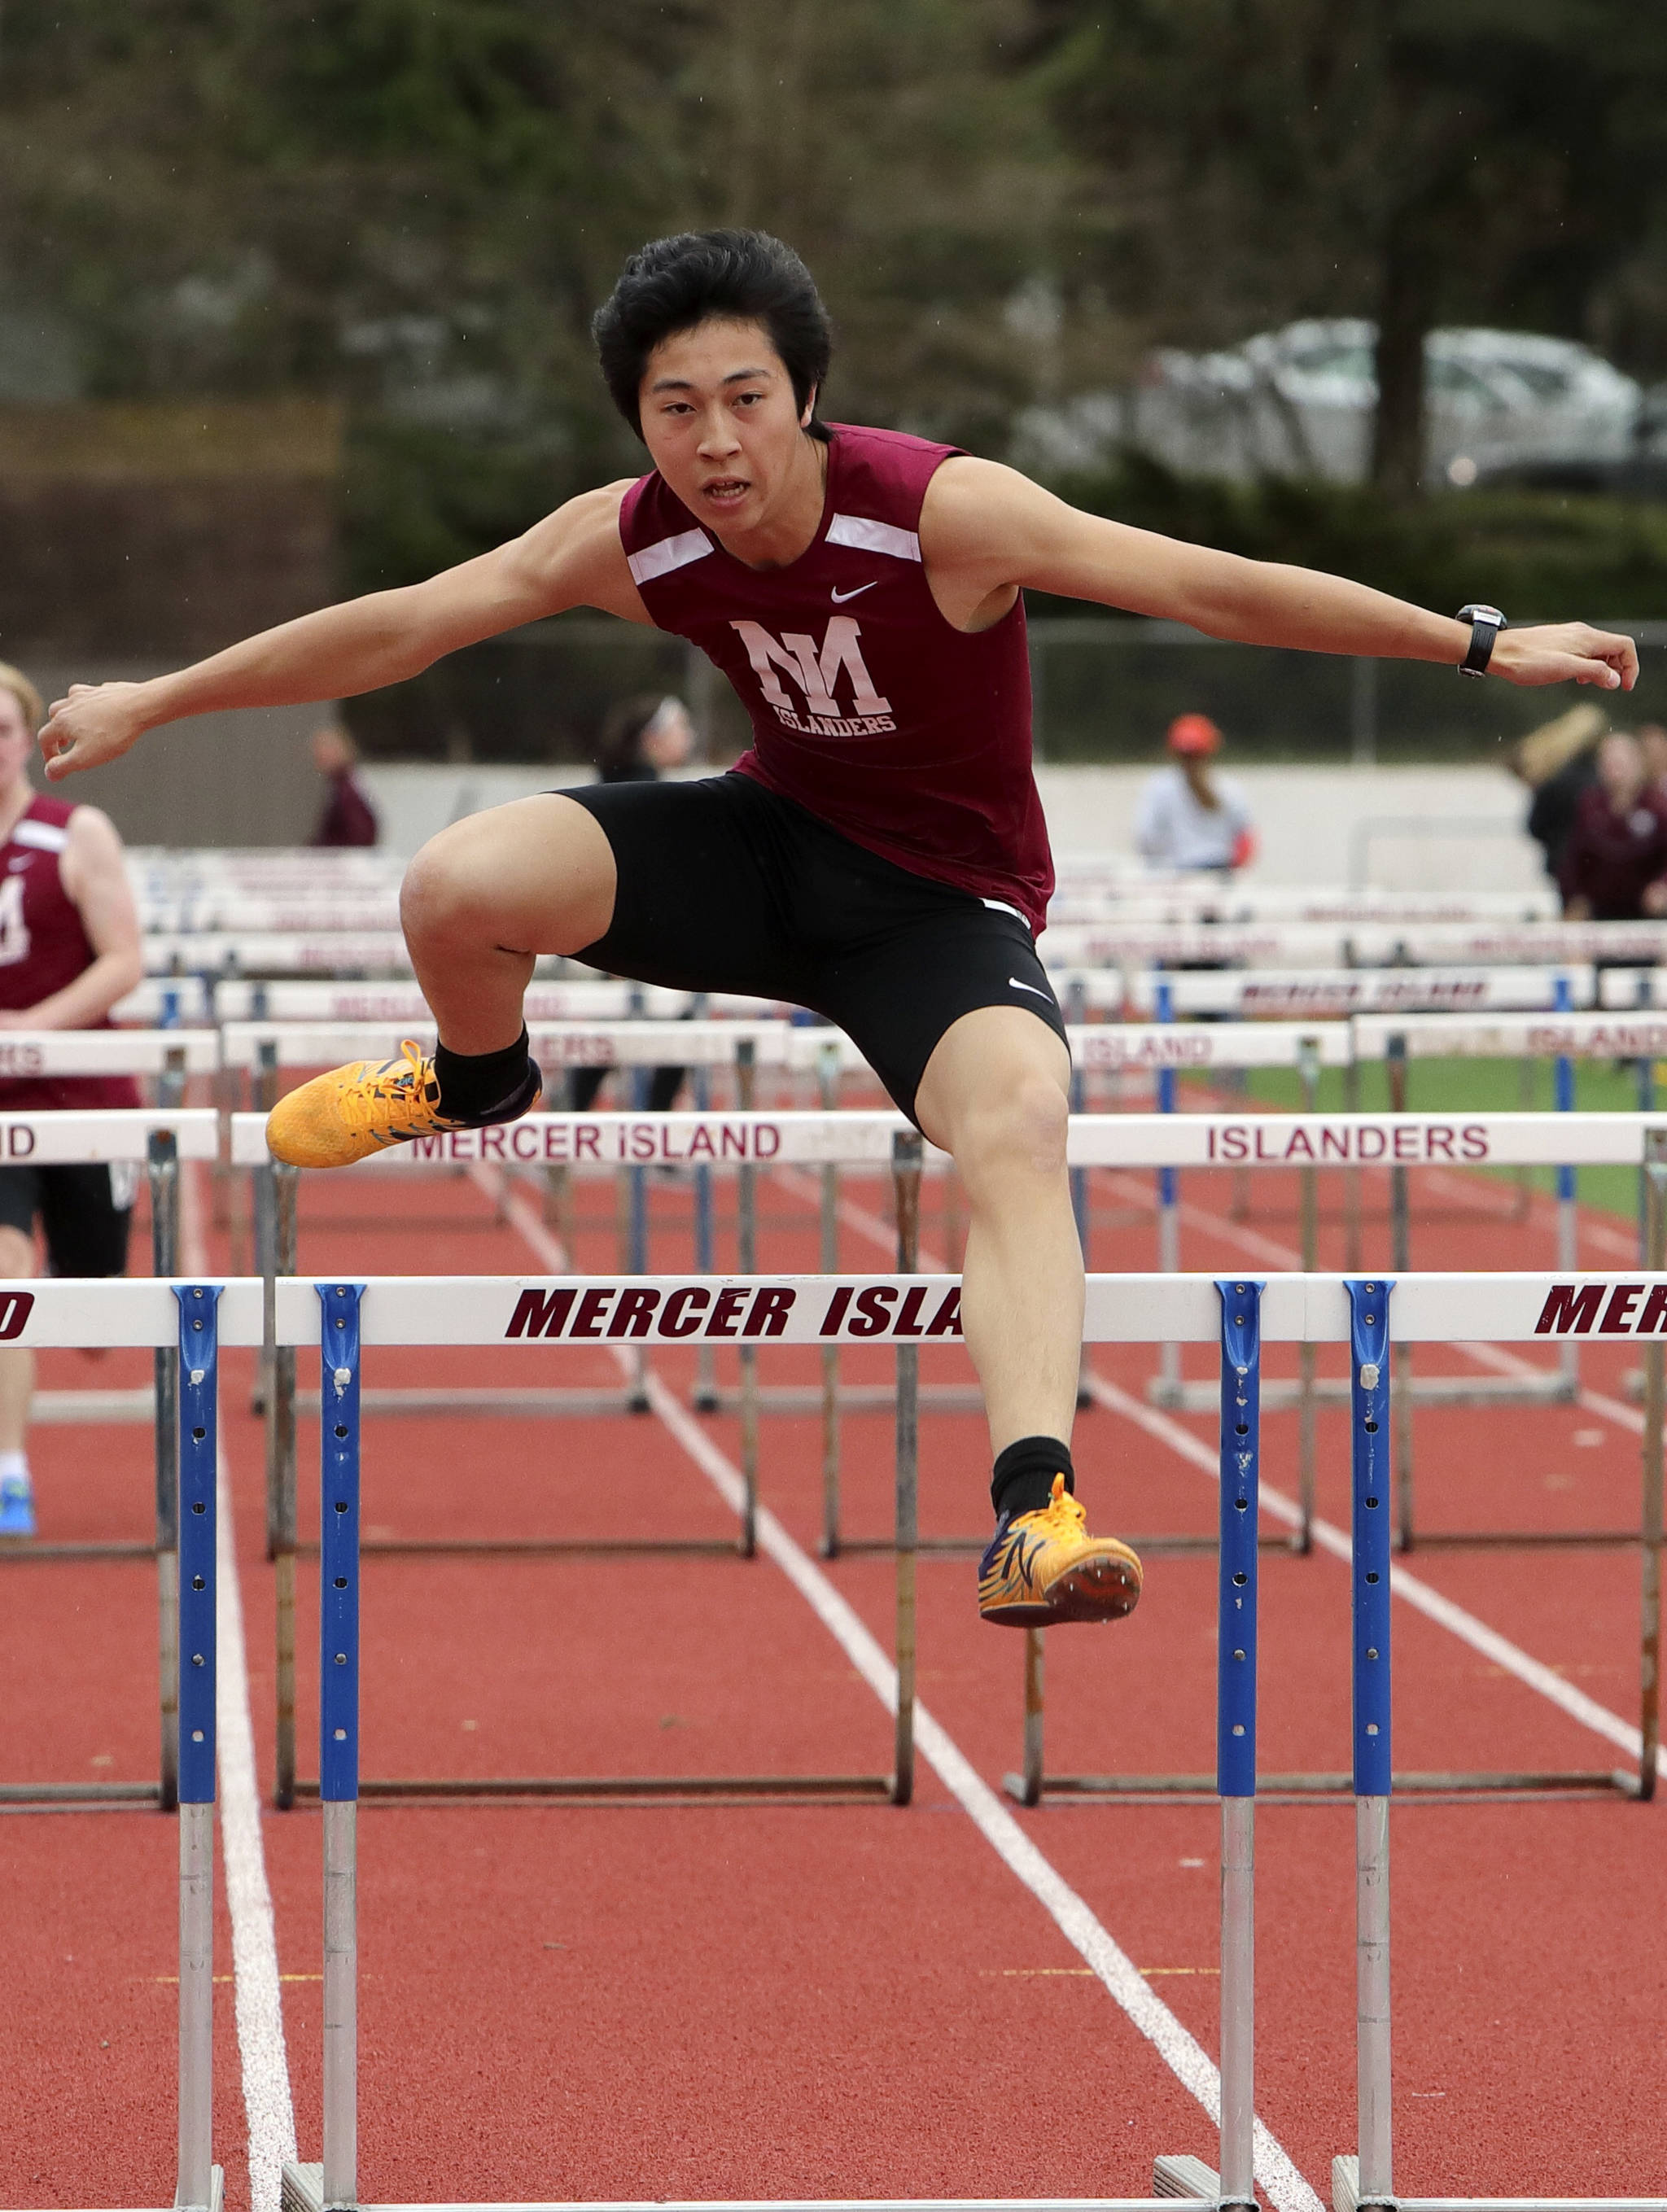 Photo courtesy of Jay Na                                 The Mercer Island Islanders girls track team improved their overall record to 4-0 courtesy of a 89-56 win against Interlake and a 91-58 victory against the Redmond Mustangs in a KingCo 3A/2A double dual on March 29 on Mercer Island.                                 The Mercer Island boys squad lost to Interlake 76-69 and were defeated by Redmond 98-57. Islanders' girls athletes capturing first place in their respective events consisted of Maya Virdell (100 meters, 1600 meter-relay), Gretchen Blohm (200 meters, 800 meter-relay), Kayla Lee (400 meters, 800 meter-relay, 1600 meter-relay), Katie McCormick (100 meter hurdles), Ella Hensey (800 meter-relay, 1600 meter-relay), Eliza Crenshaw (800 meter-relay), Margaret Baker (1600 meter-relay), Faith Osei-Tutu (shot-put, javelin) and Susanna Lepow (pole vault). Islanders' boys athletes earning first place in their events were Colin Farrell (100 meters, 200 meters), Jack Clayville (110 hurdles), Mitchell Kirby (300 hurdles), Eli Yen (discus) and Jeffery Tian (pole vault). Yian (pictured) competes in the 110 hurdles in a double dual against the Interlake Saints and Redmond Mustangs on March 29.